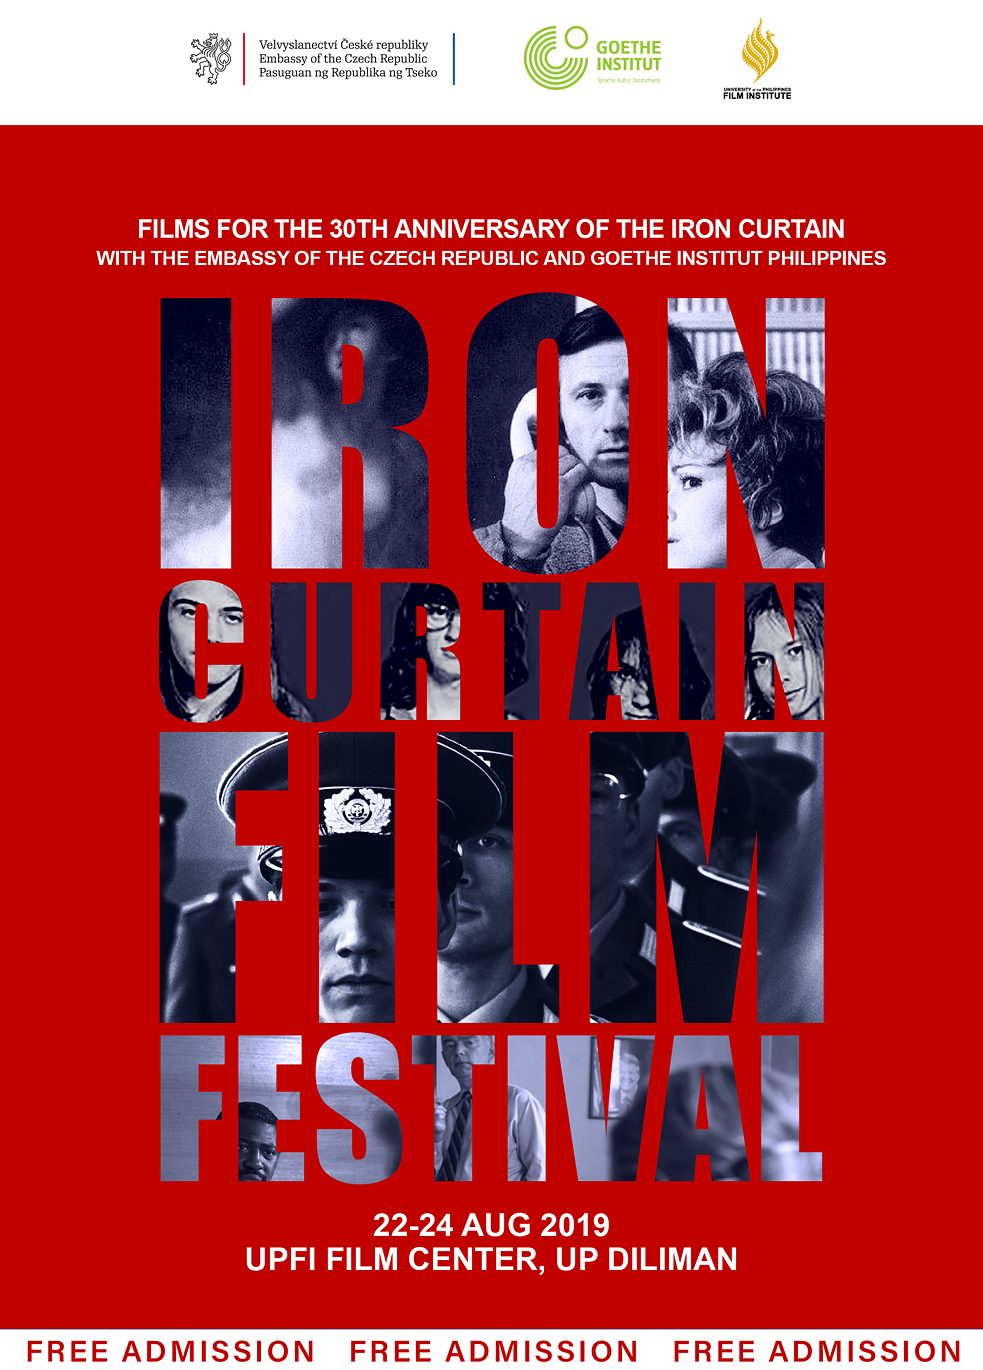 Iron Curtain Film Festival Poster